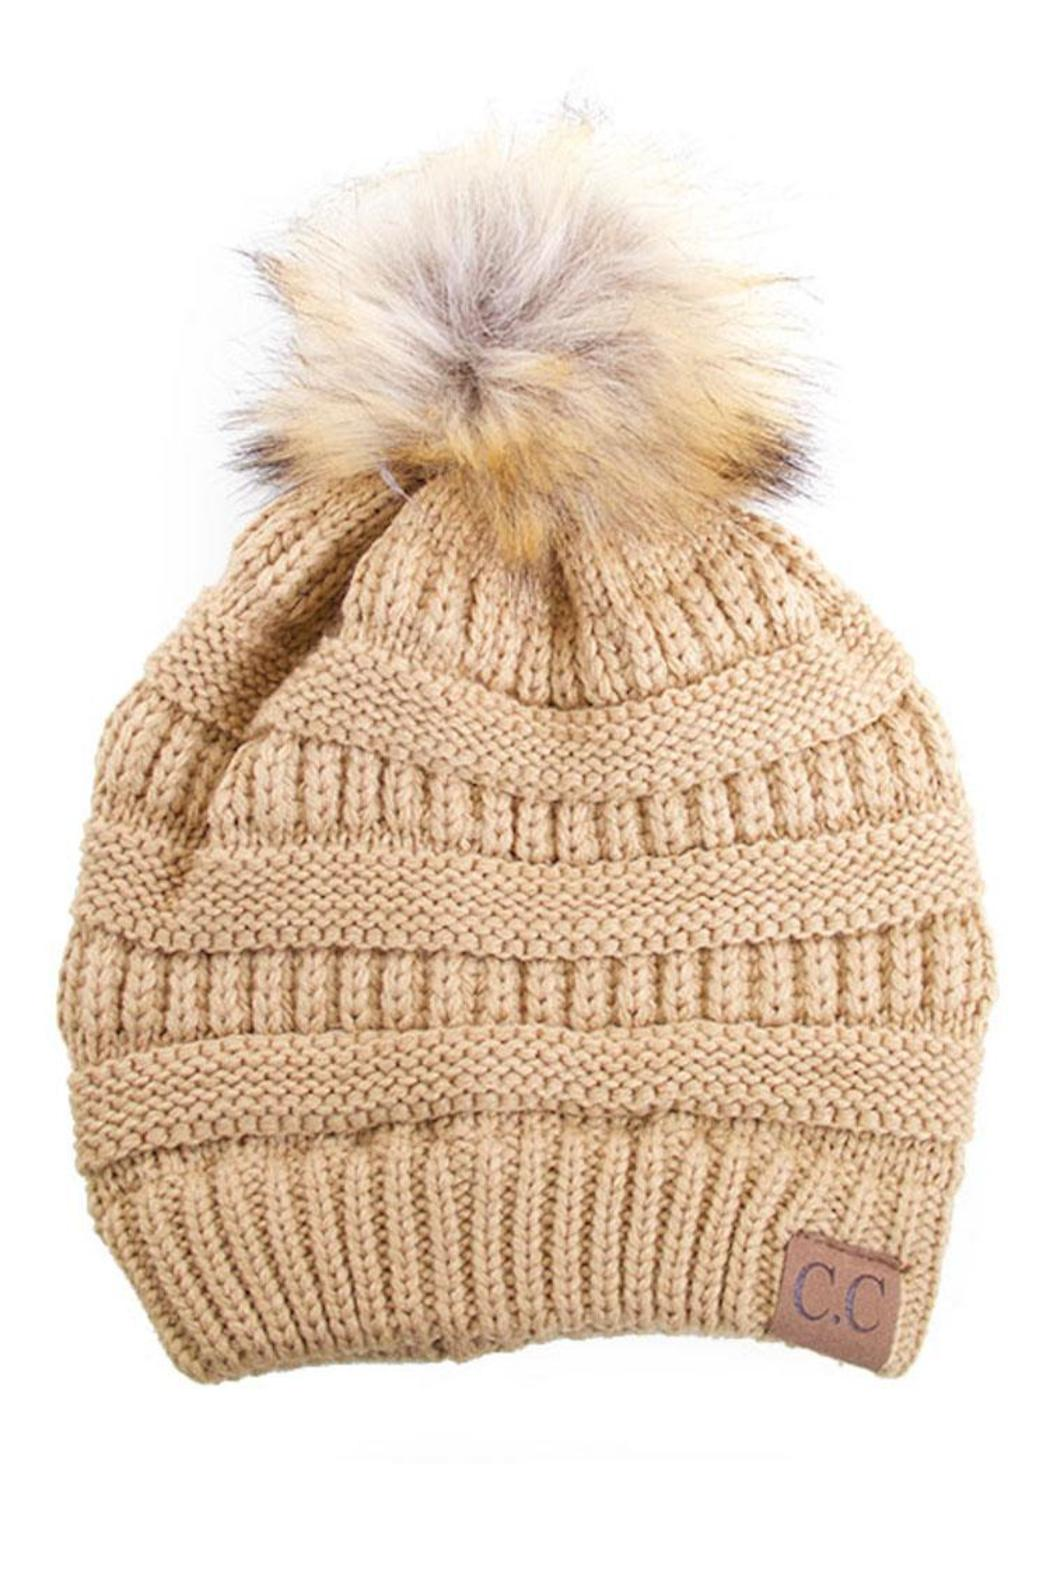 9446194be C.C Beanie Pom-Pom Fur Beanie from Fayetteville by Gatsby's Boutique